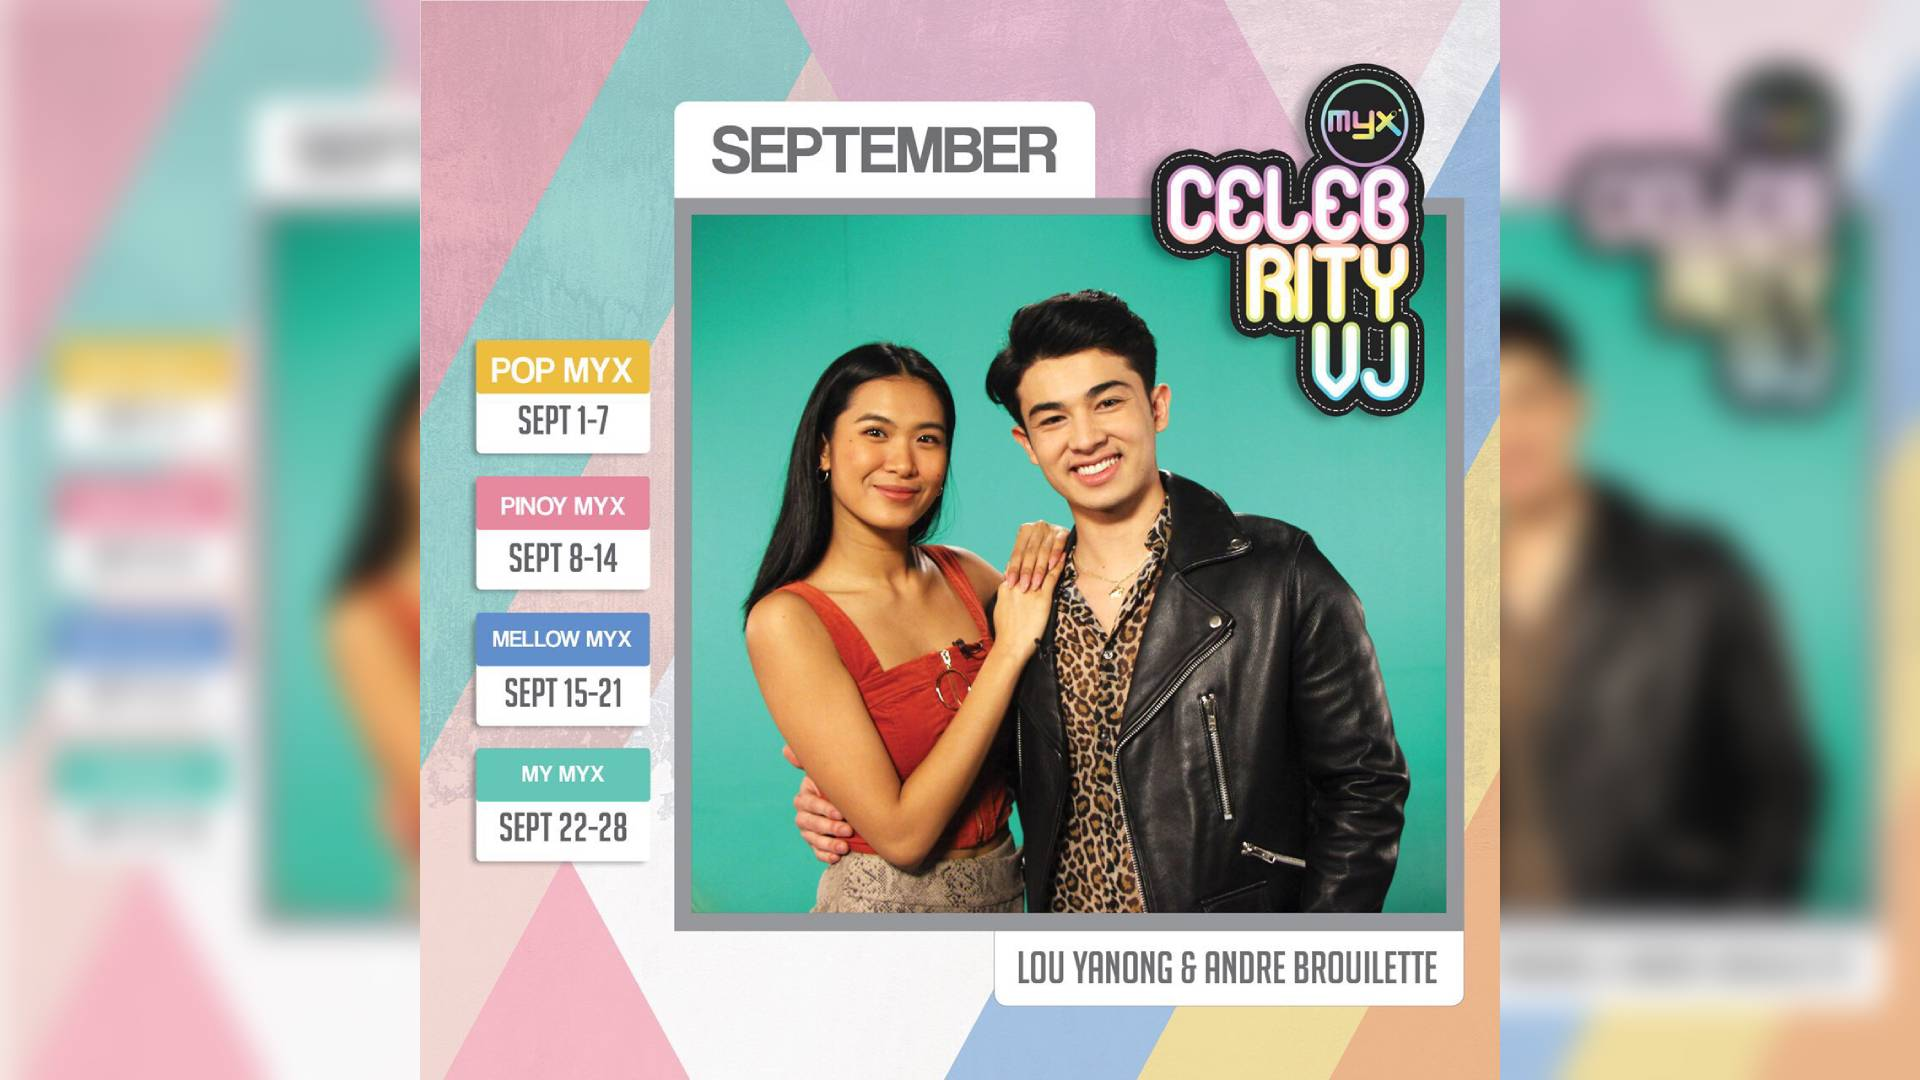 Lou and Andre are all loved up as MYX celebrity VJs this September